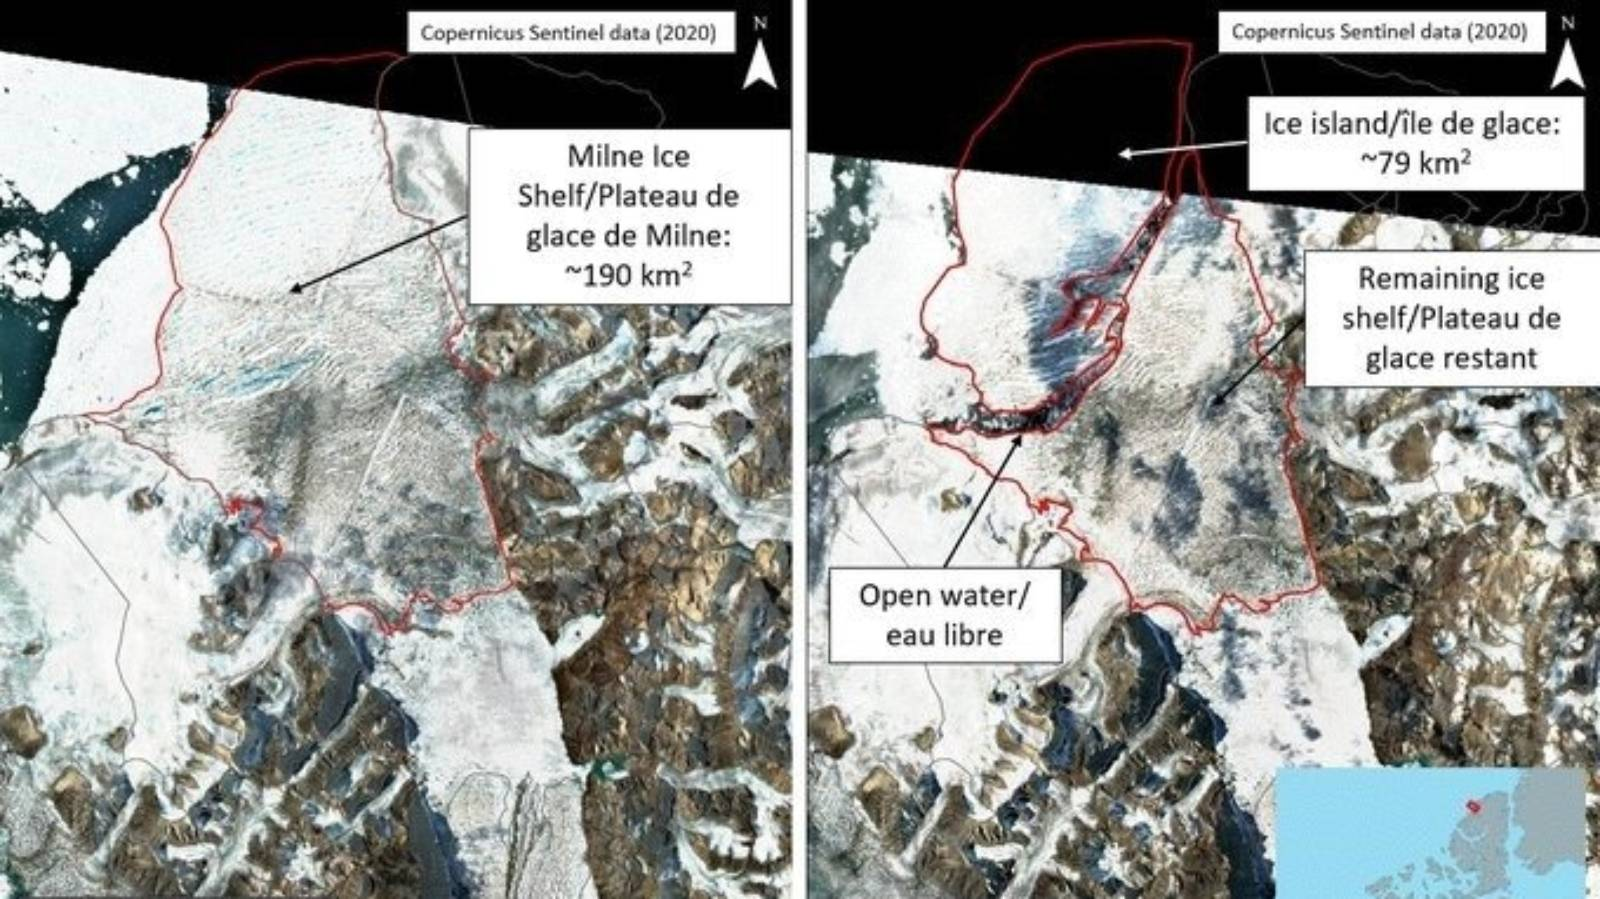 Canada's last intact ice shelf collapses due to warming